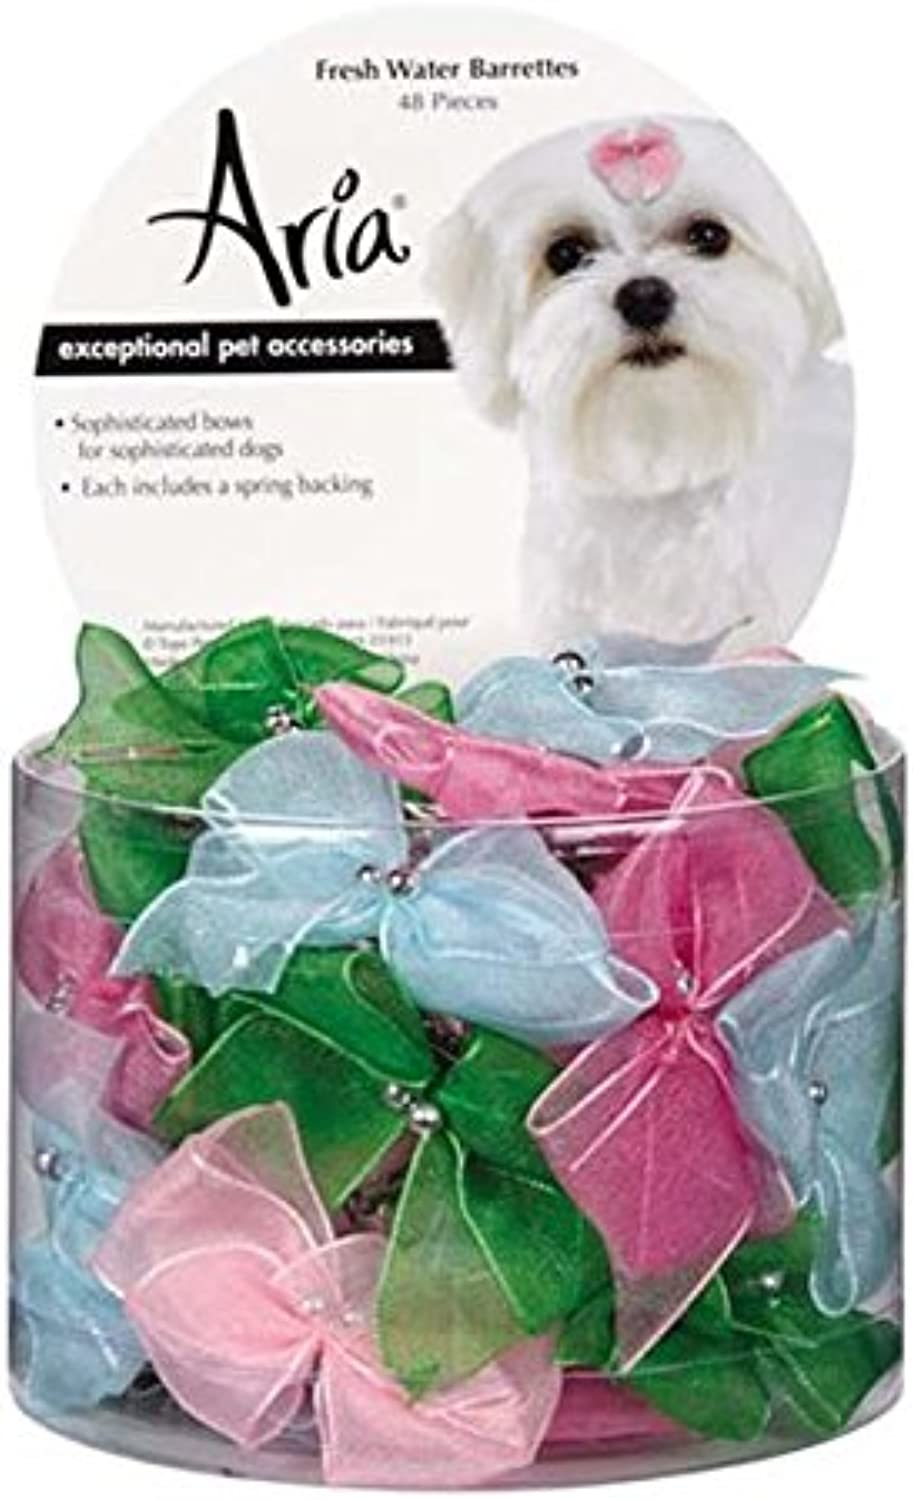 Aria 48Piece Fresh Water Dog Barrette Canister Set